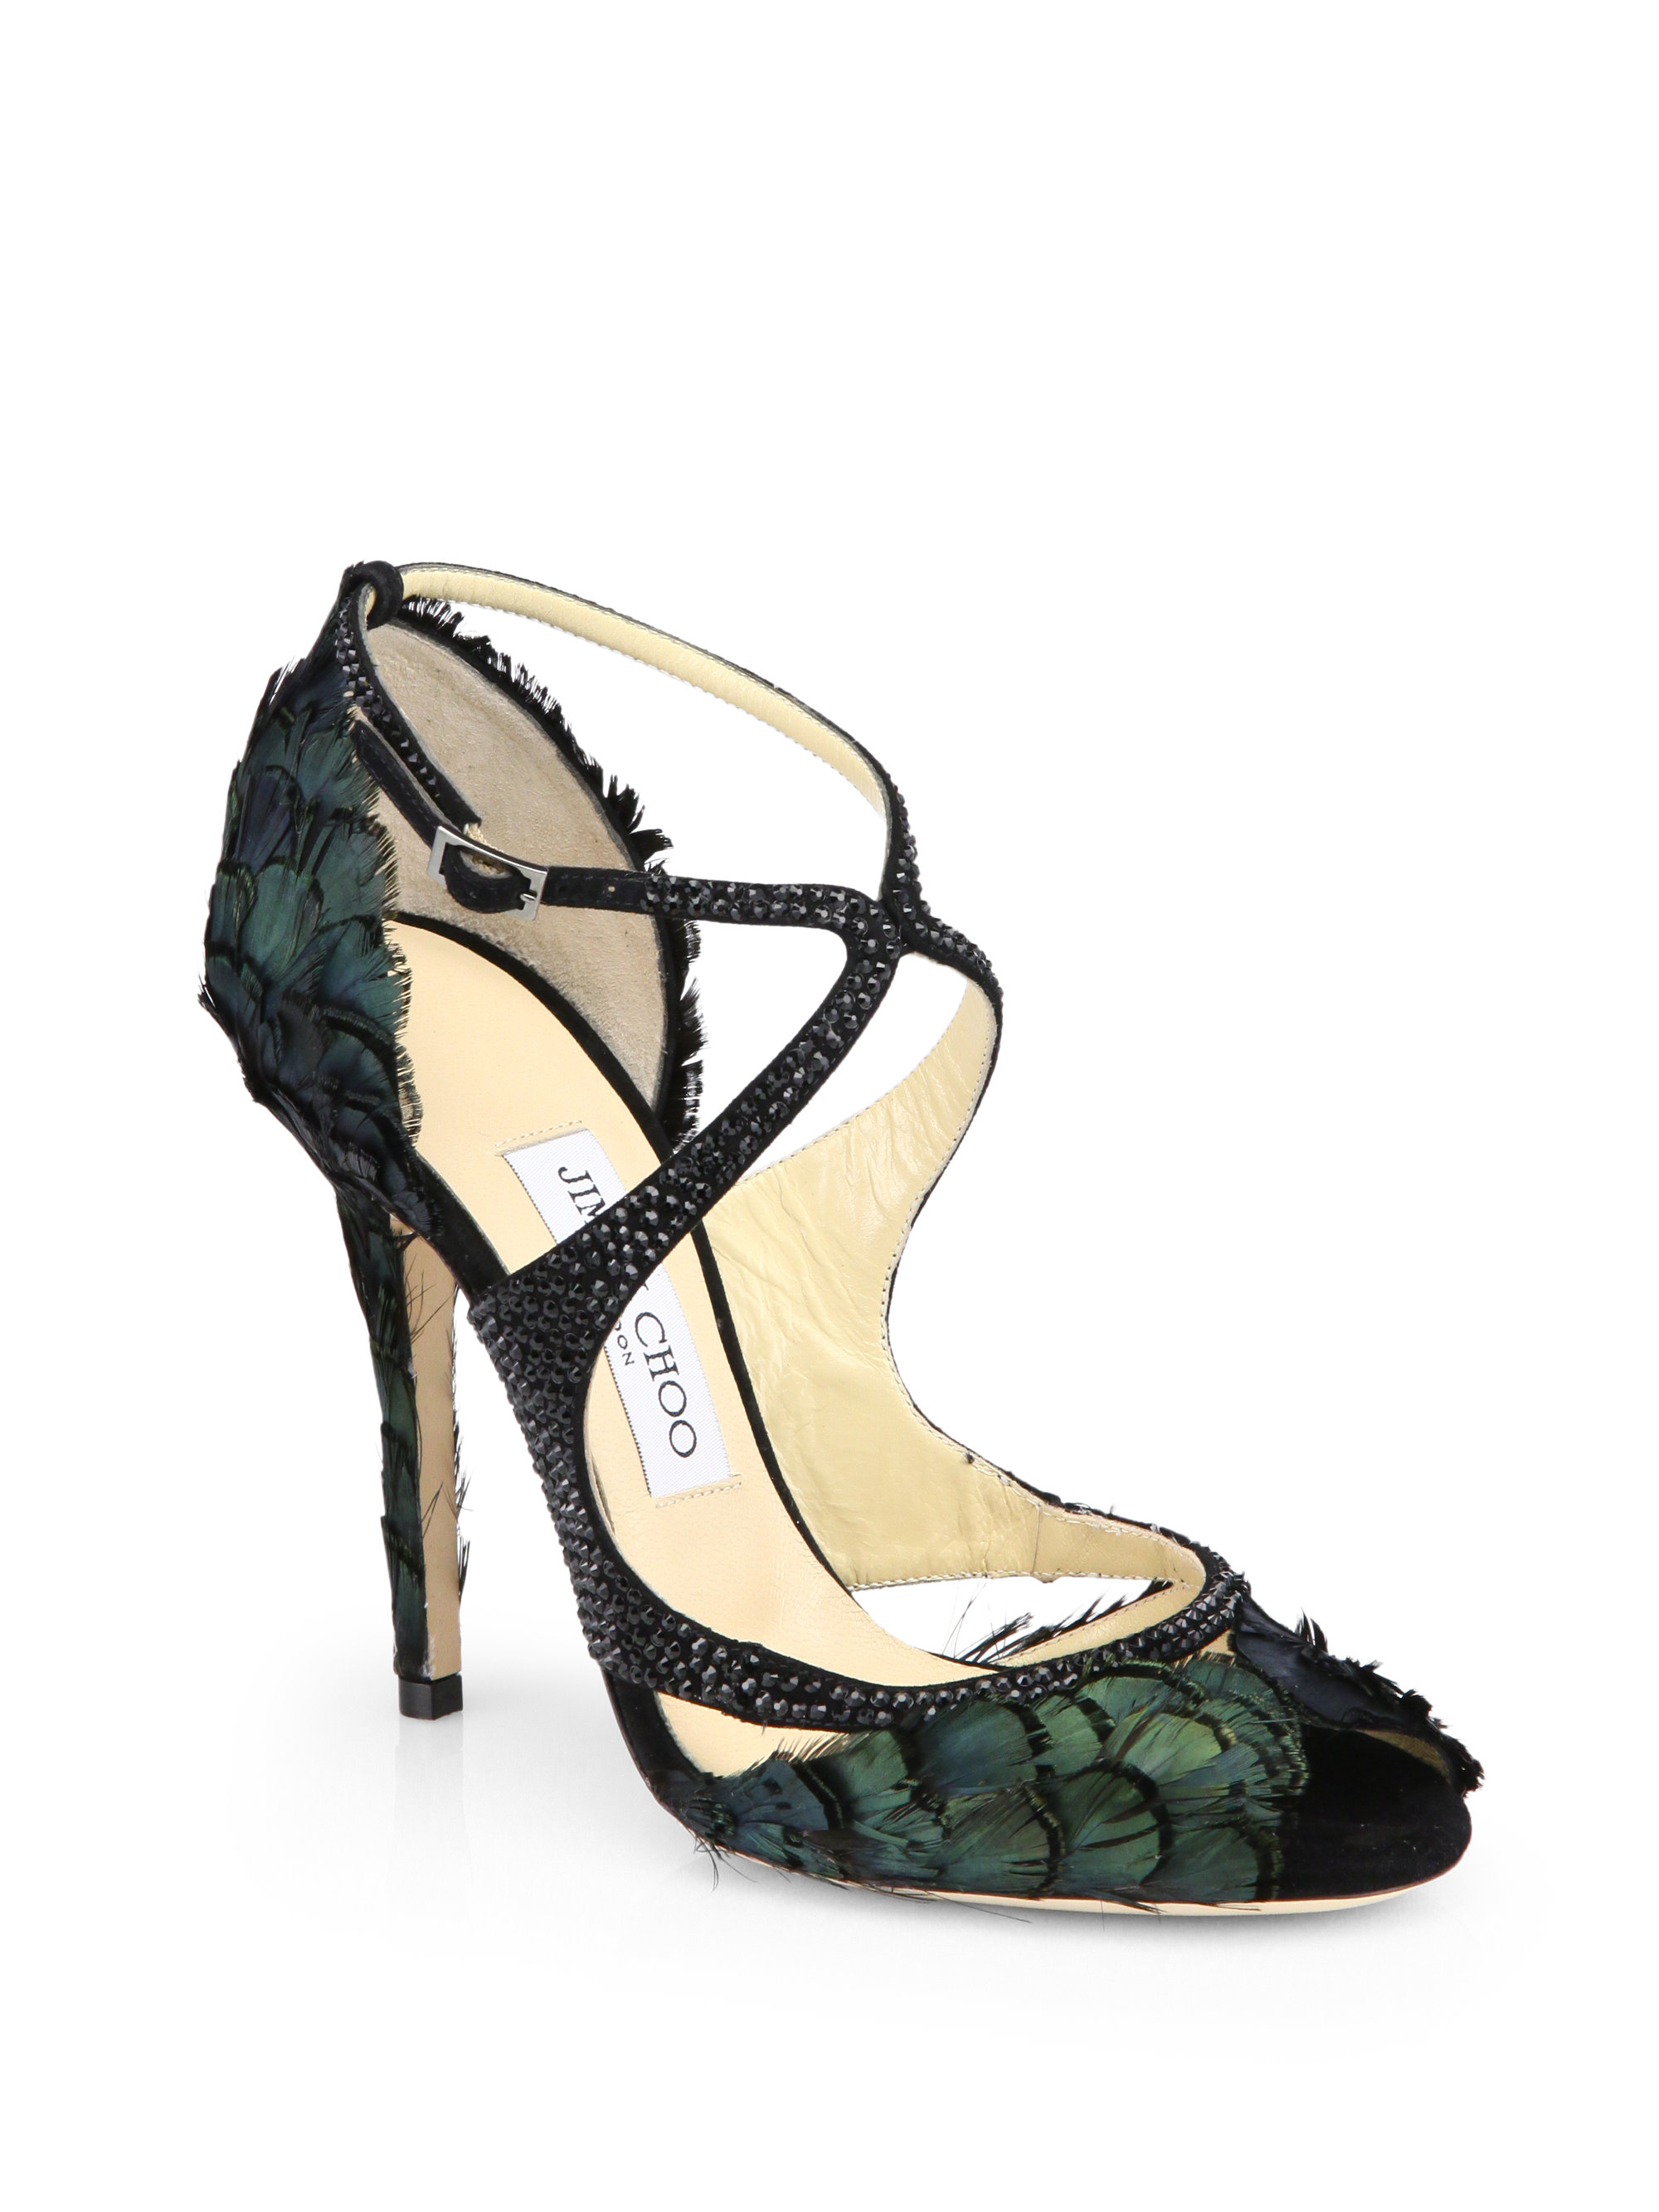 958d58f540e ... coupon code for lyst jimmy choo kamelia shimmer feather sandals in  green 36eb5 46c25